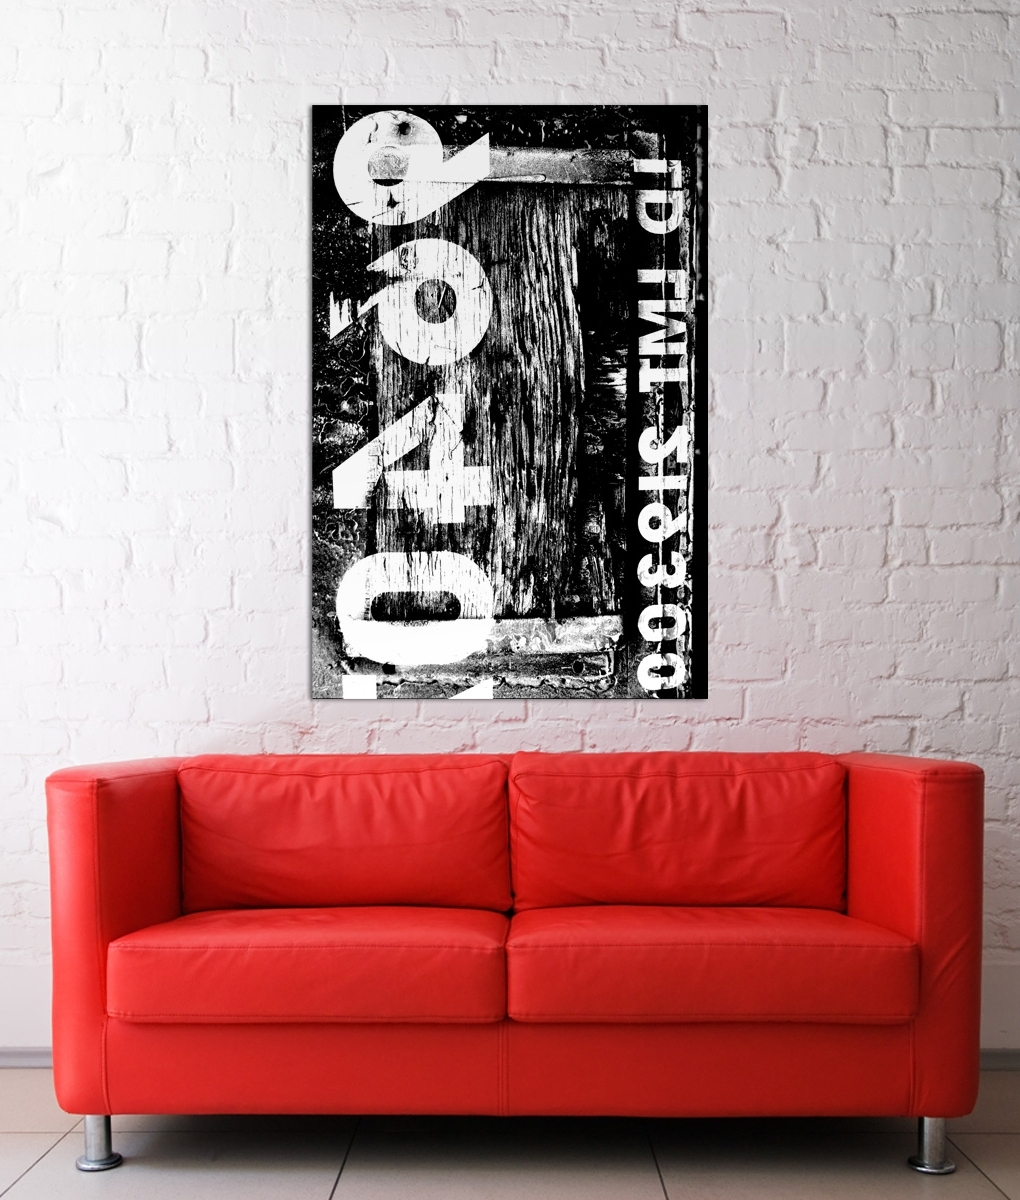 Best Industrial Wall Art Prints Framed Design And Decor throughout Large Modern Industrial Wall Decor (Image 1 of 30)